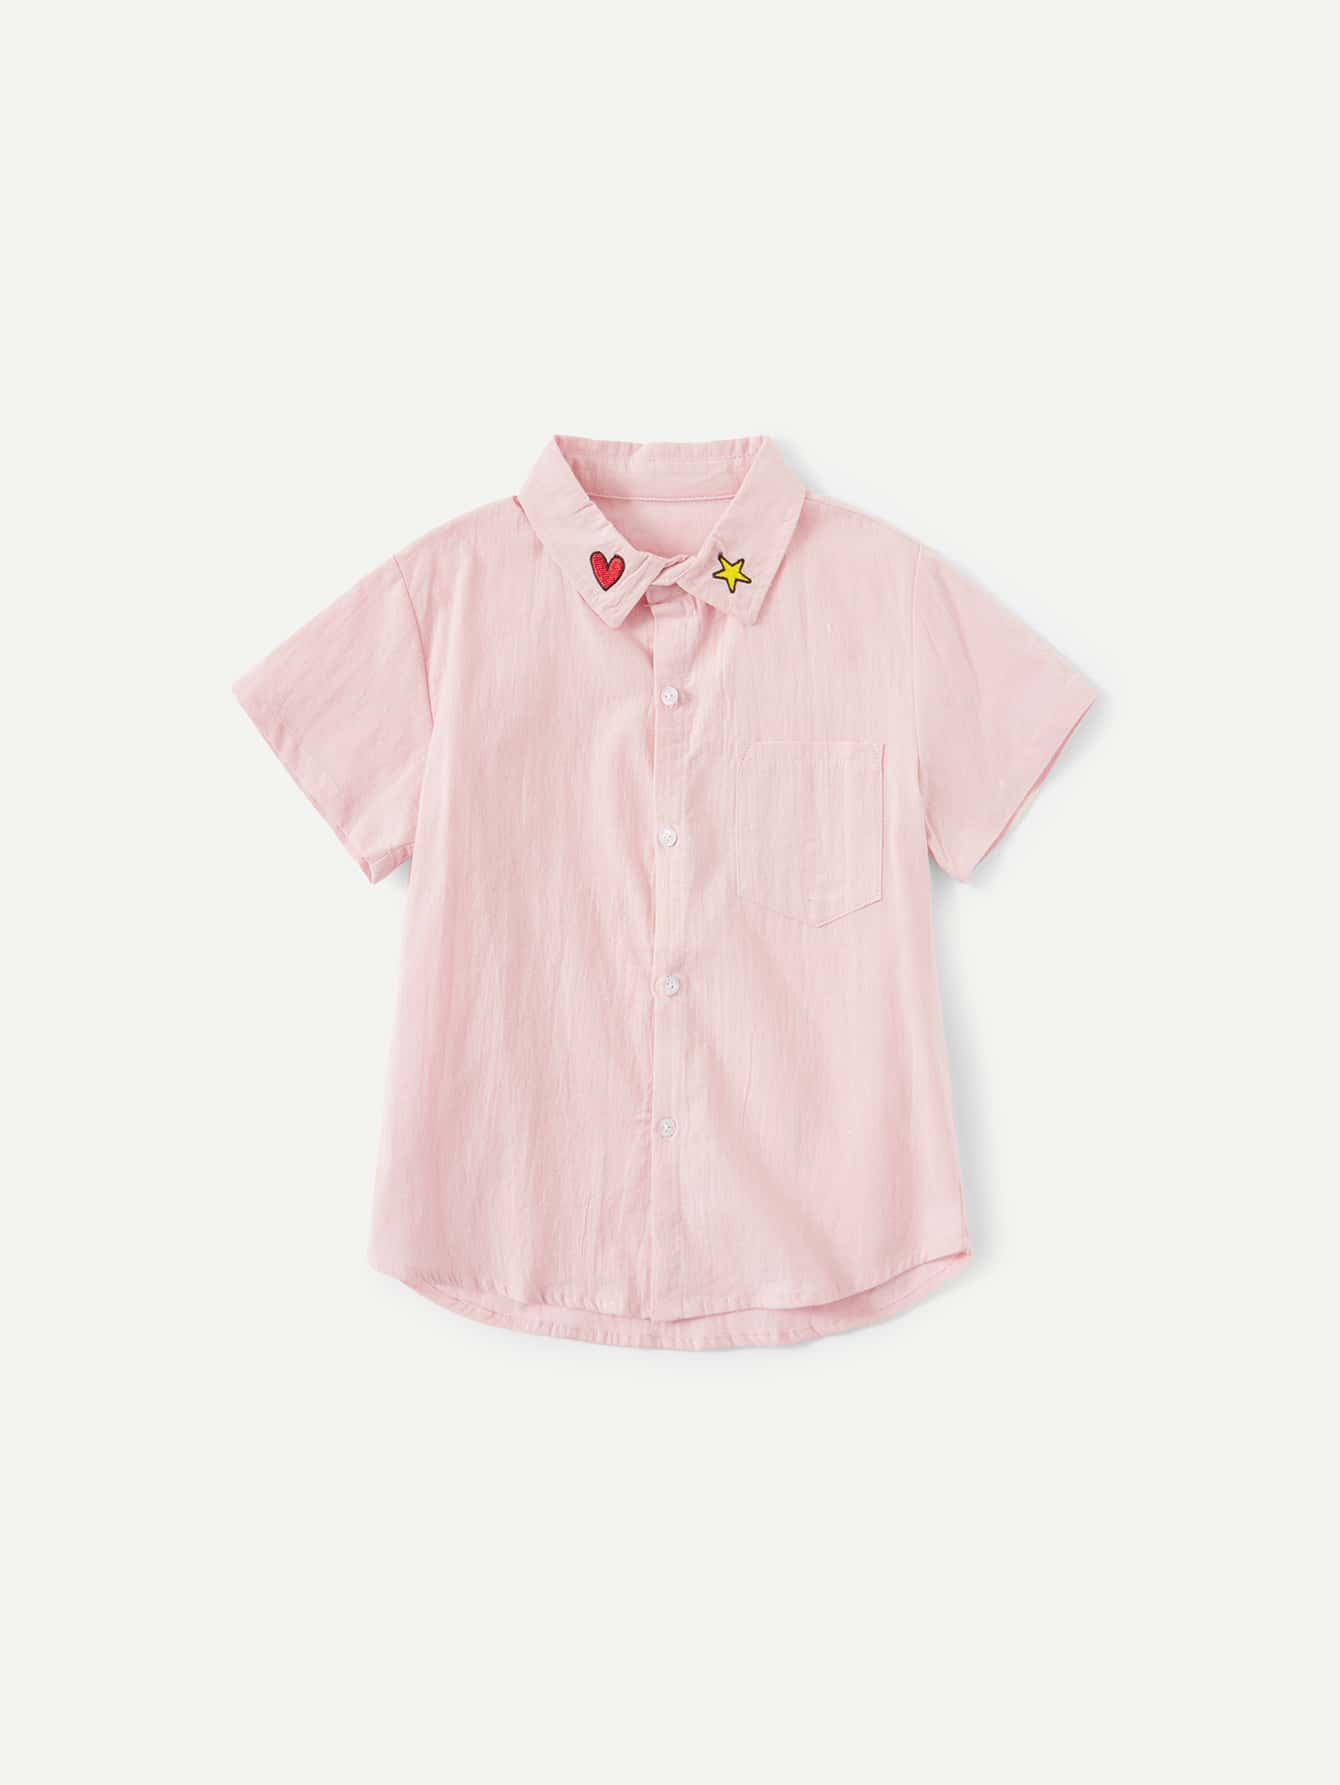 Boys Star And Heart Embroidery Blouse blouse luxmix blouse